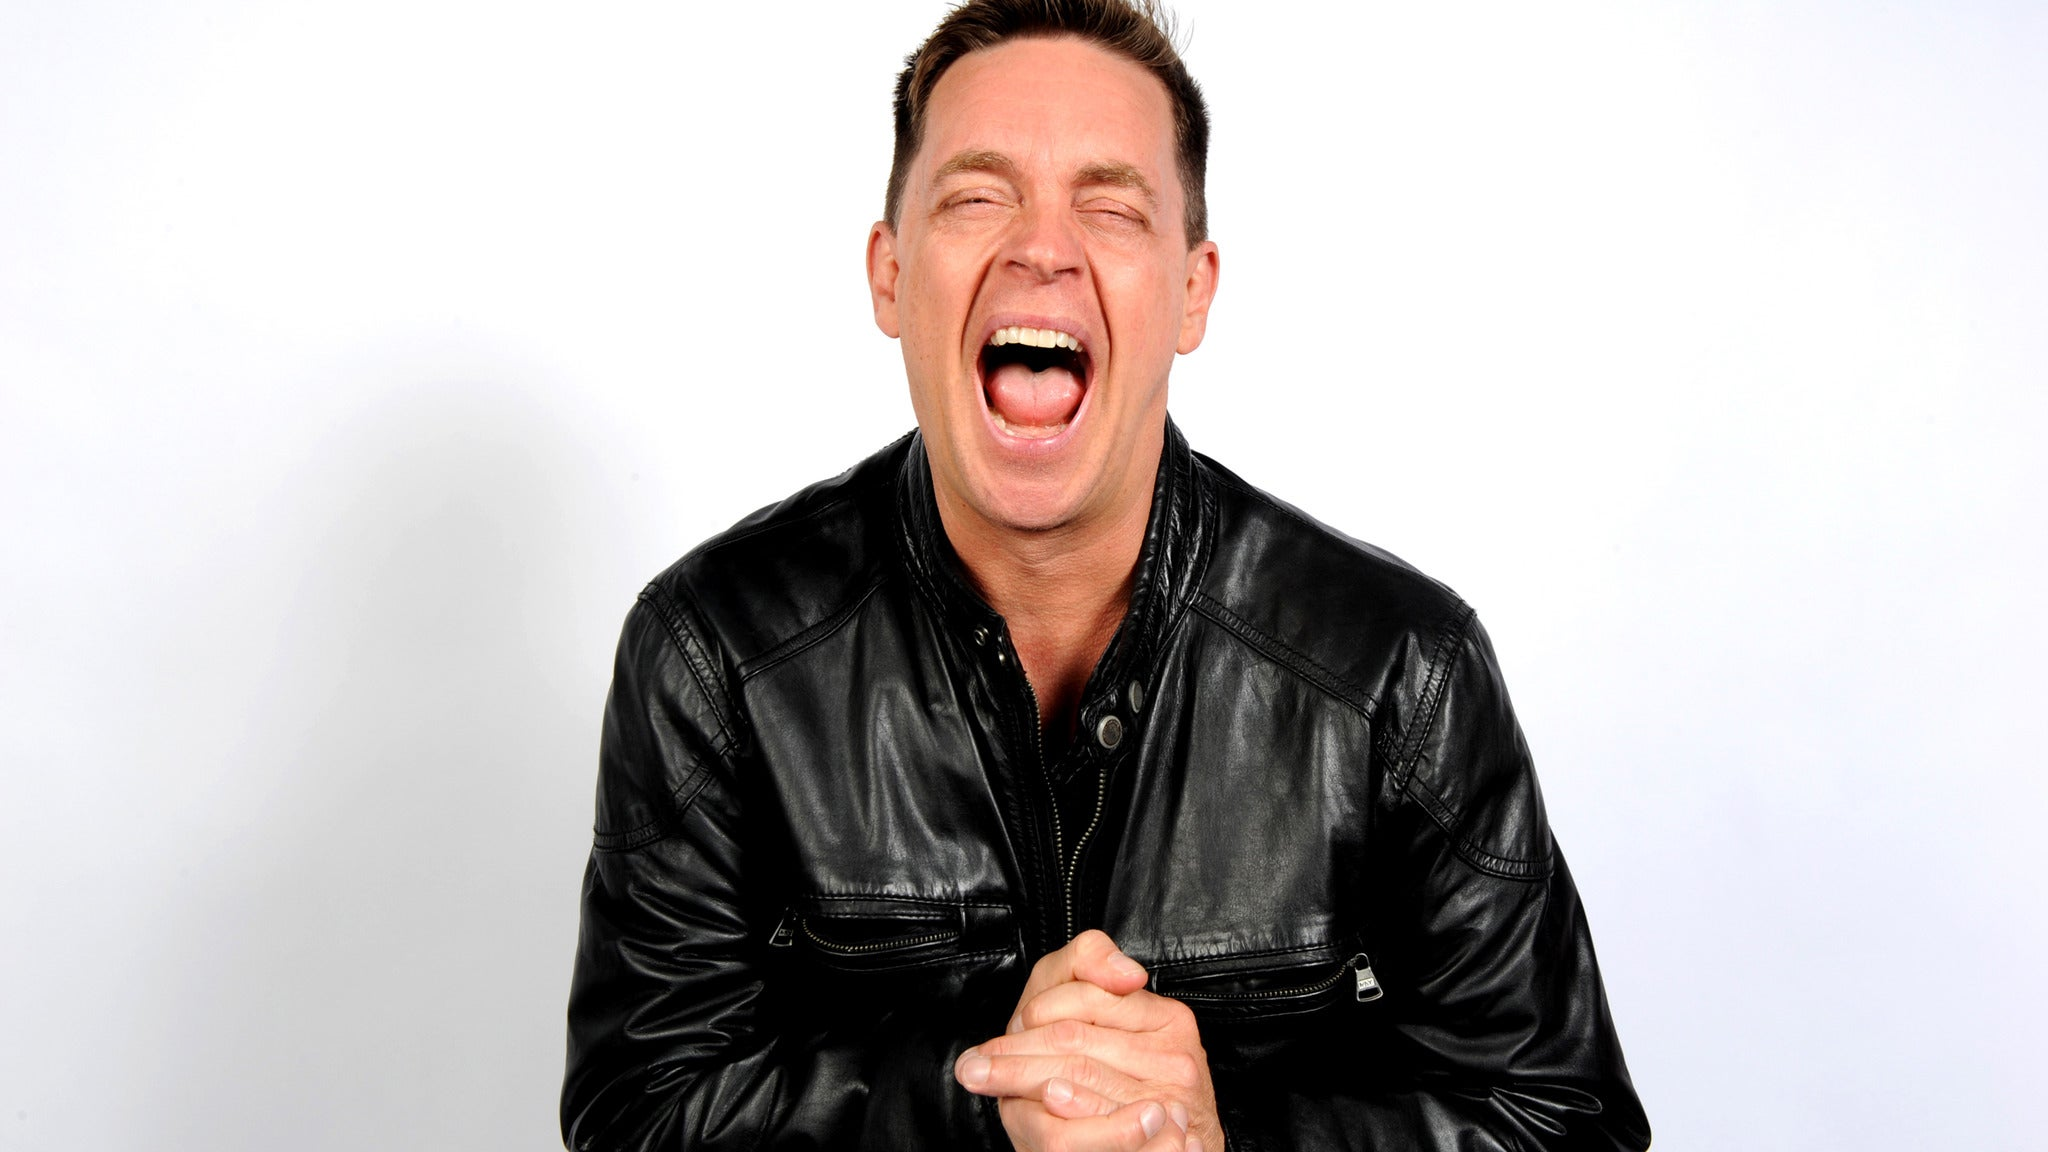 The Jim Breuer Residency at Soundwaves